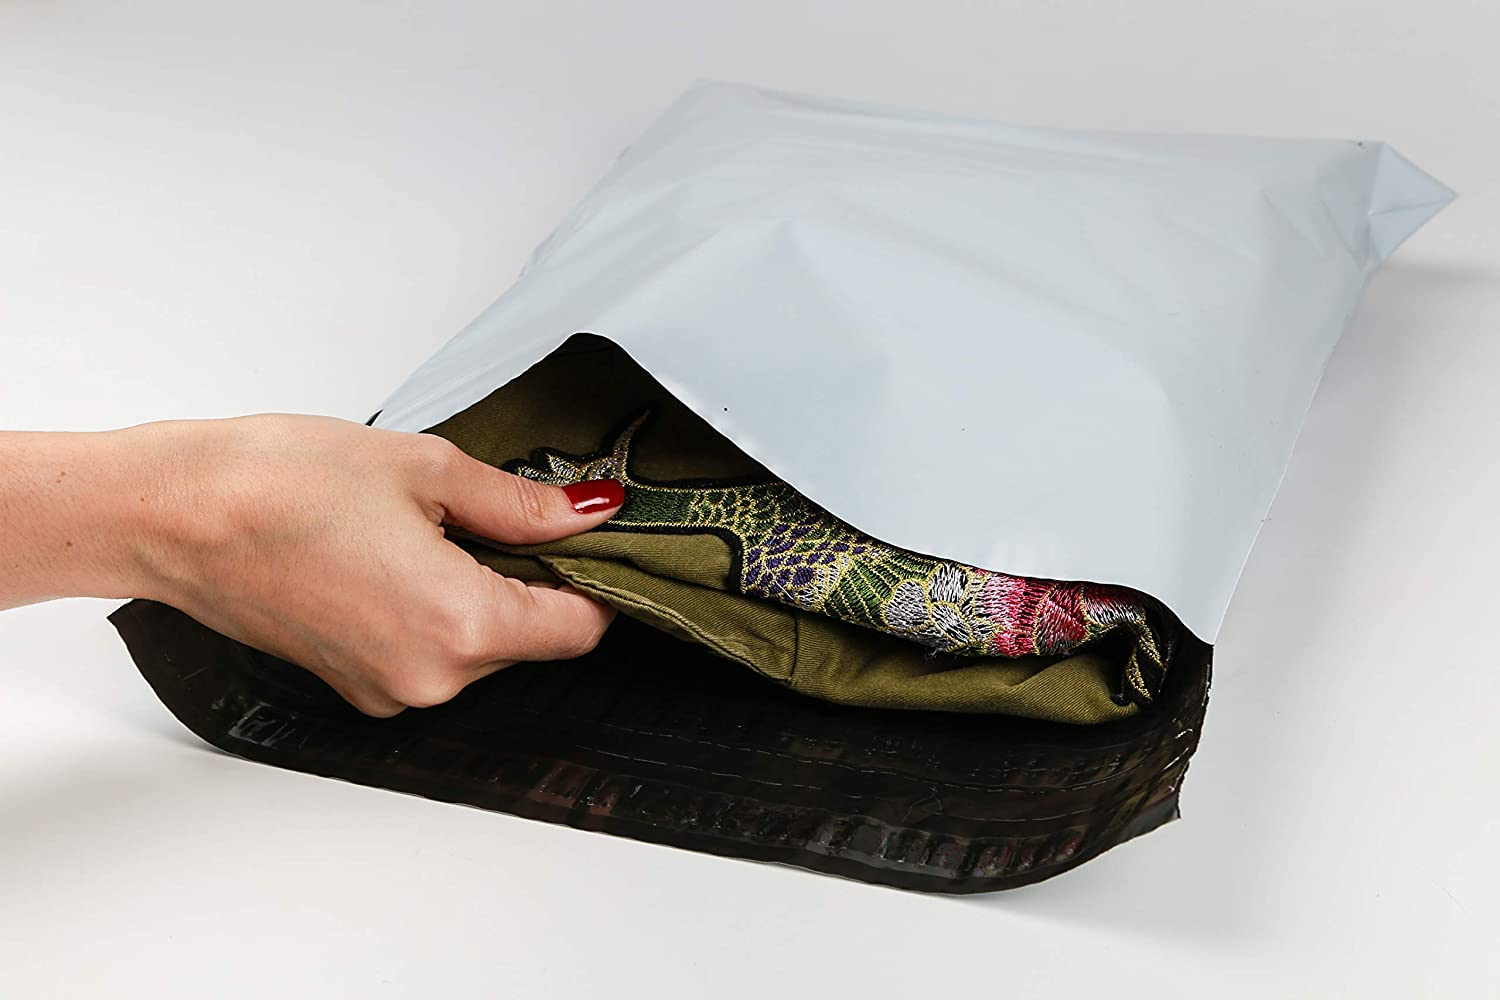 Amazon.com : USPACKSMART Returnable Poly Mailers or Reusable Plastic Mailers for Online Shopping. Opaque Size 12